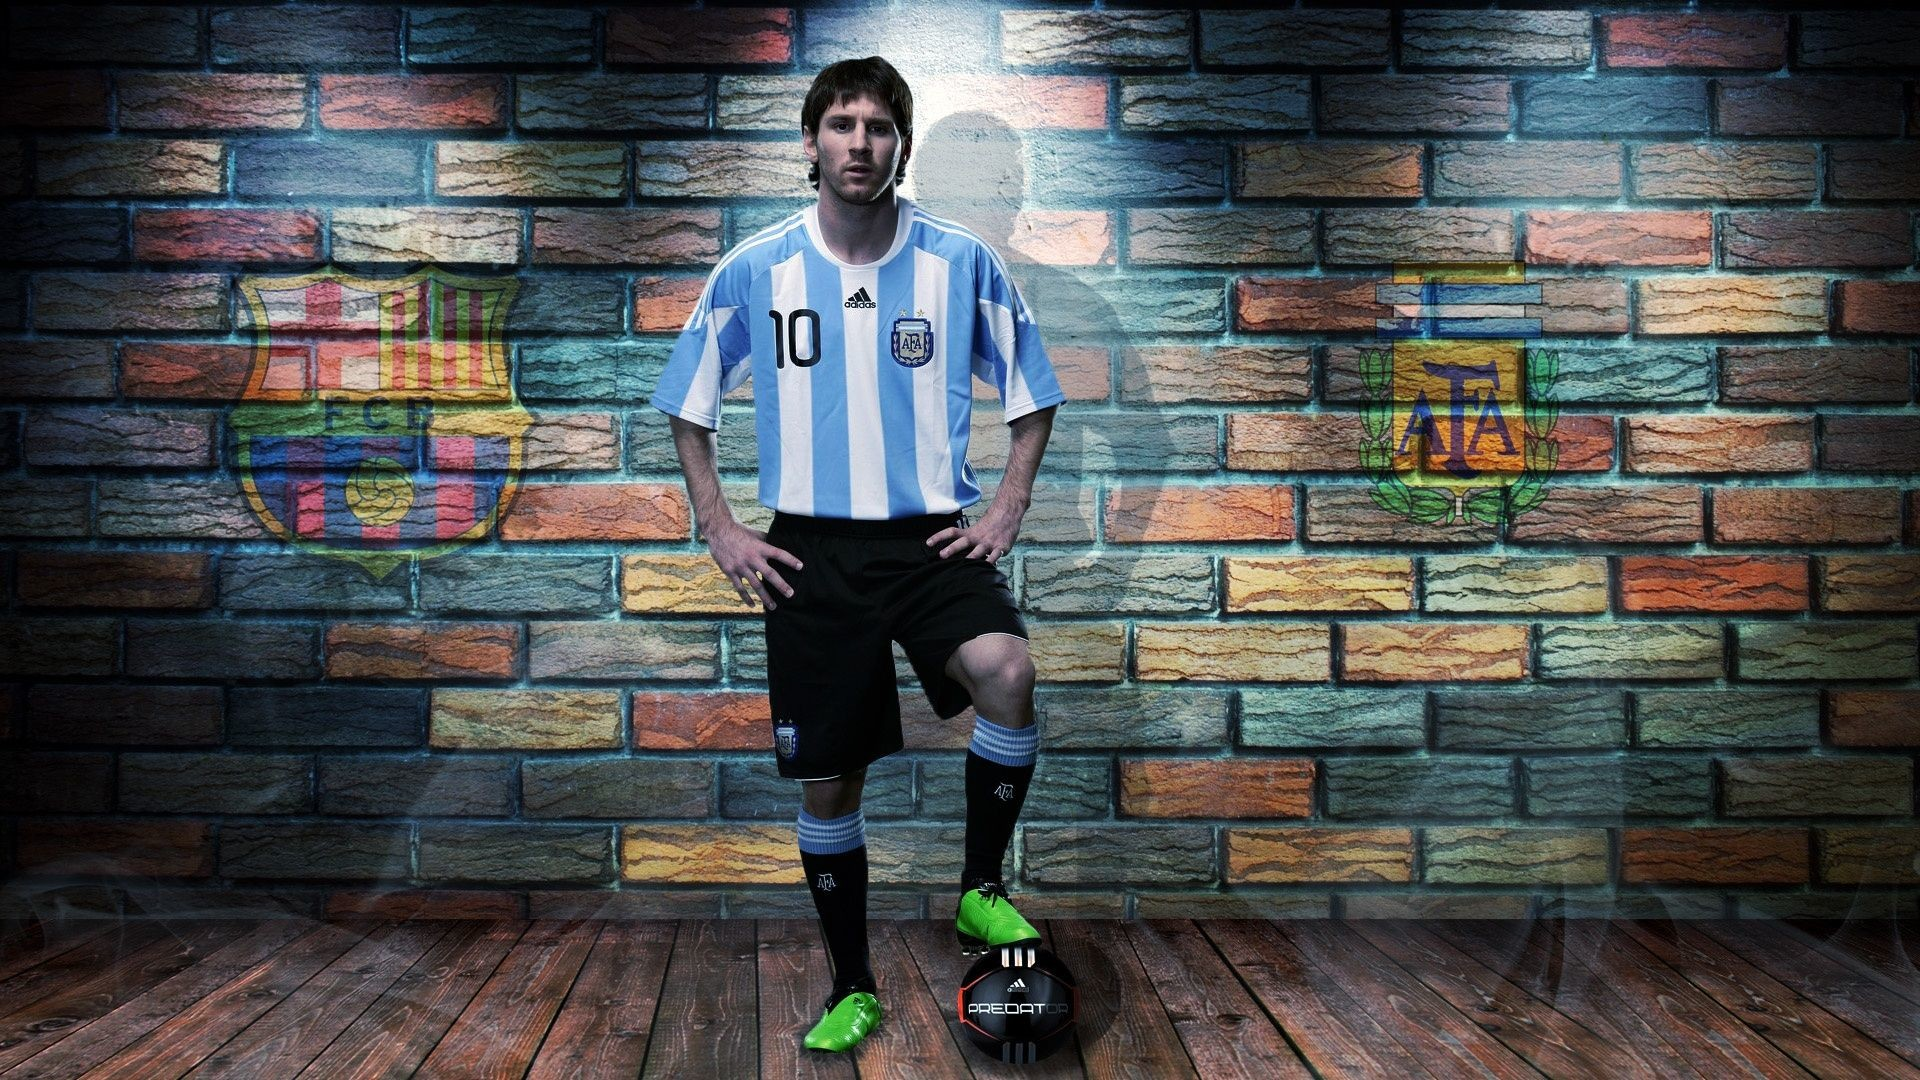 Lionel Messi Argentina Wallpapers HD Lionel Messi Wallpapers Argentina  National